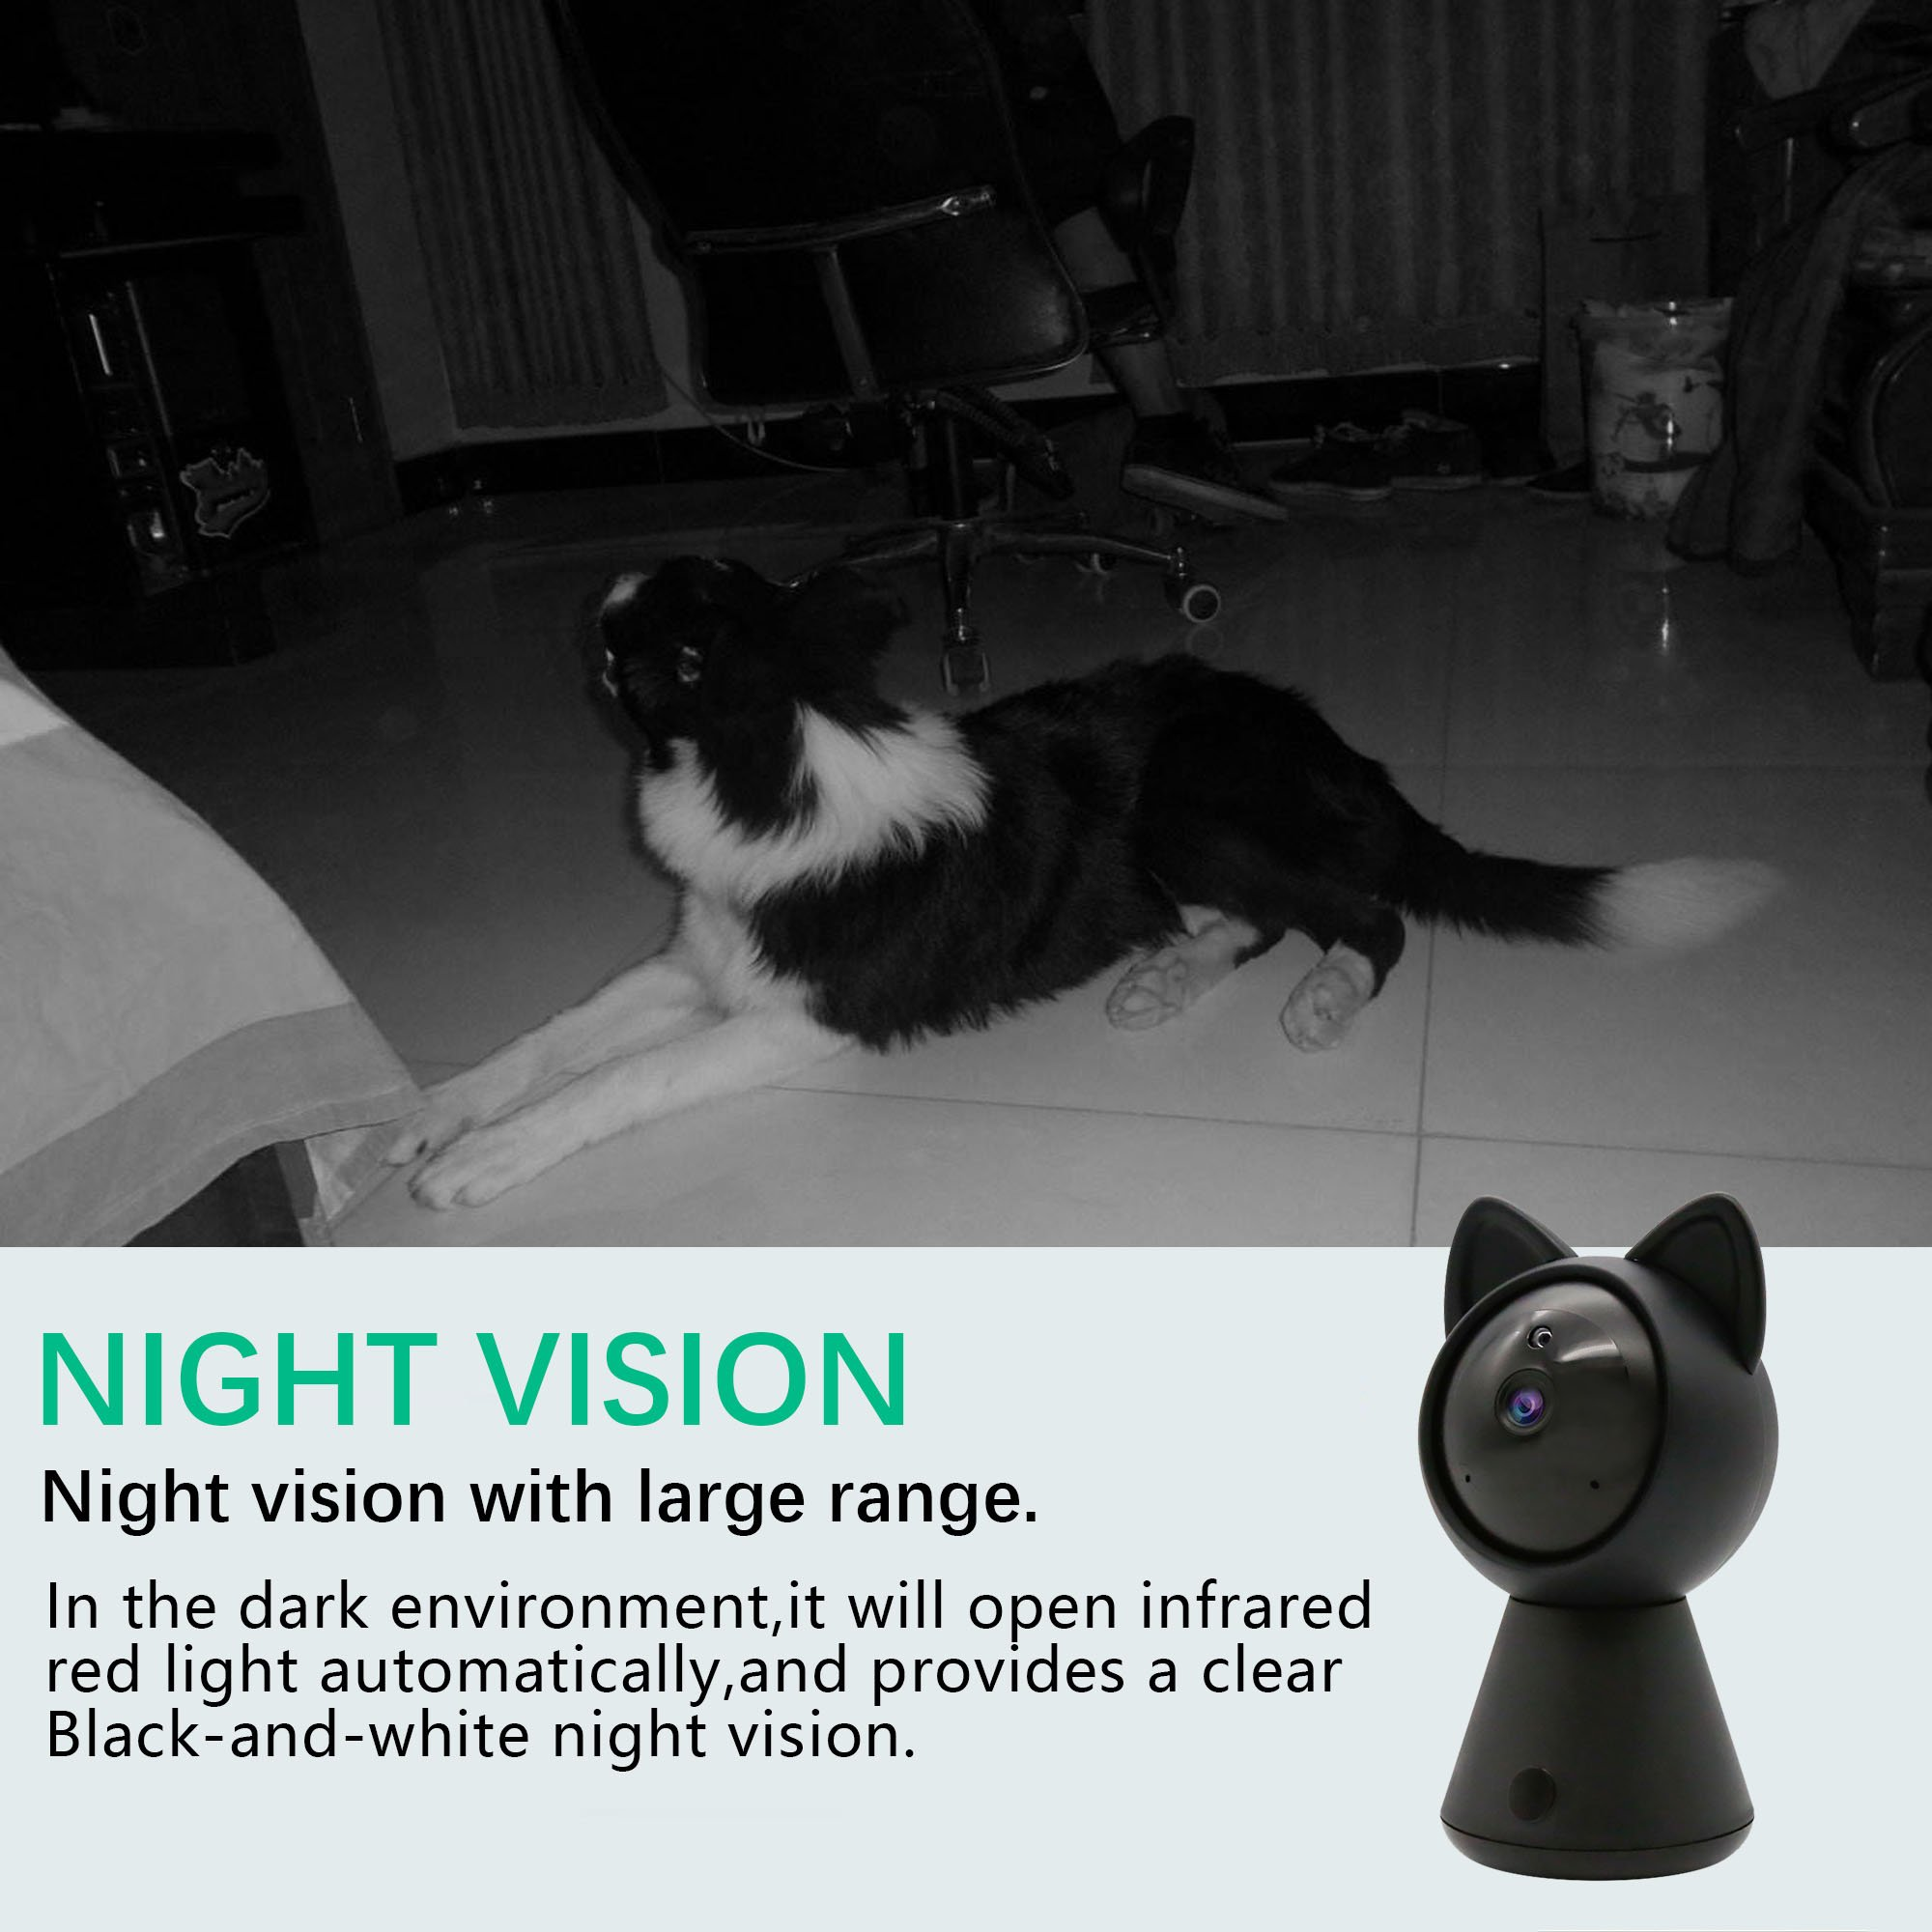 Pet IP Camera WiFi Cam HD 1080P Cute Cat camera Home Security Surveillance Wireless System Dome Camera Nanny Baby Cam Indoor Monitor Pan/Tilt with Night Vision 2-Way Audio Motion Detection alarm B by LUFASA (Image #6)